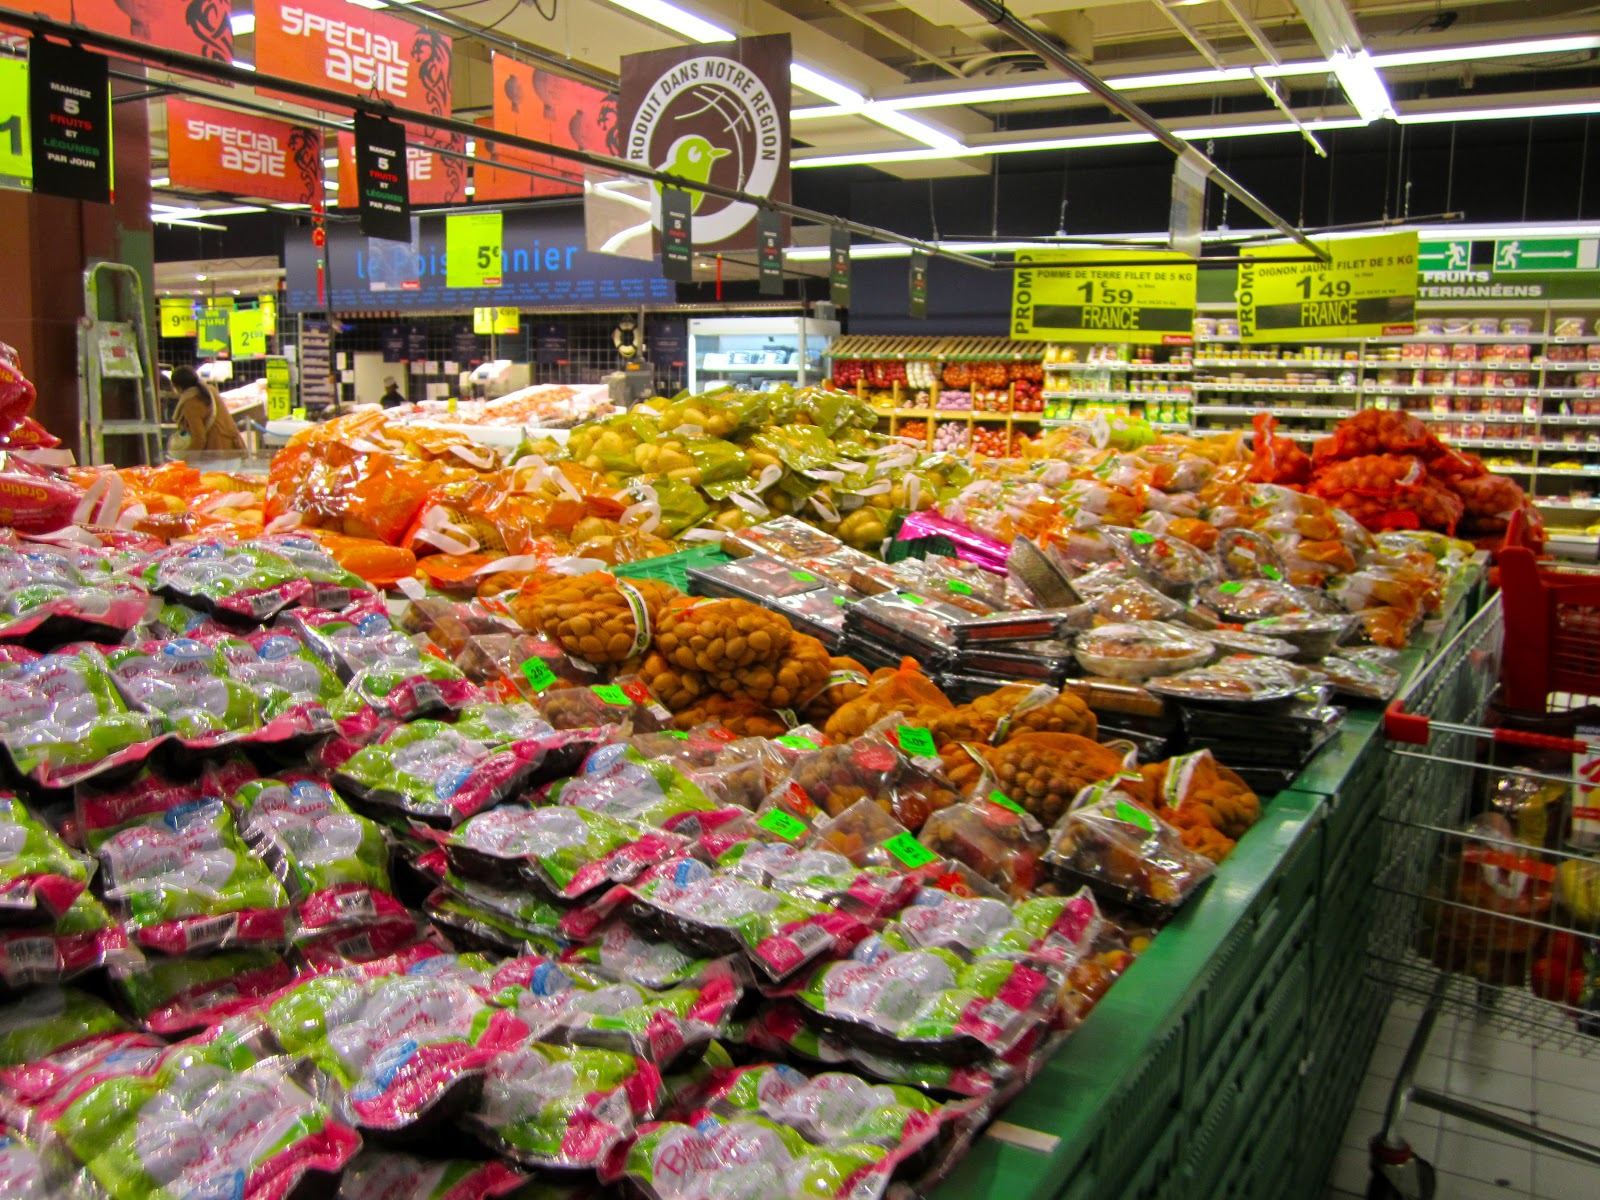 globetrotting with Cecile: Day 15 : Auchan = France's